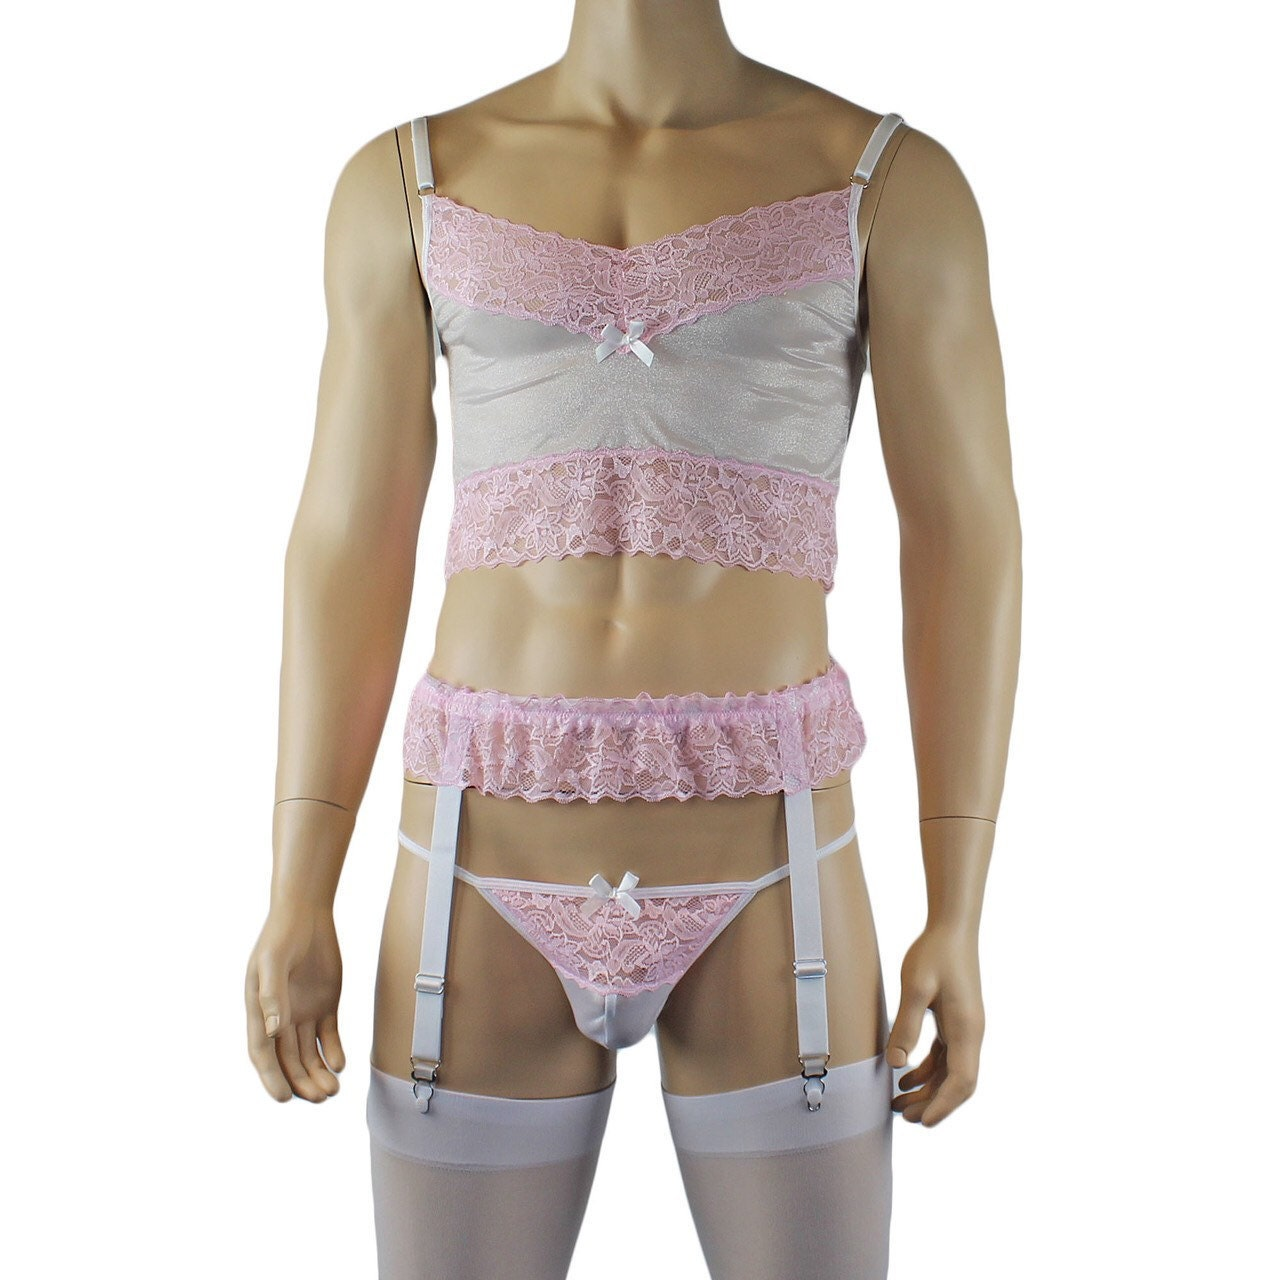 Brief Garterbelt and Stockings Pink Male Stretch Crystal /& Lace Camisole Top